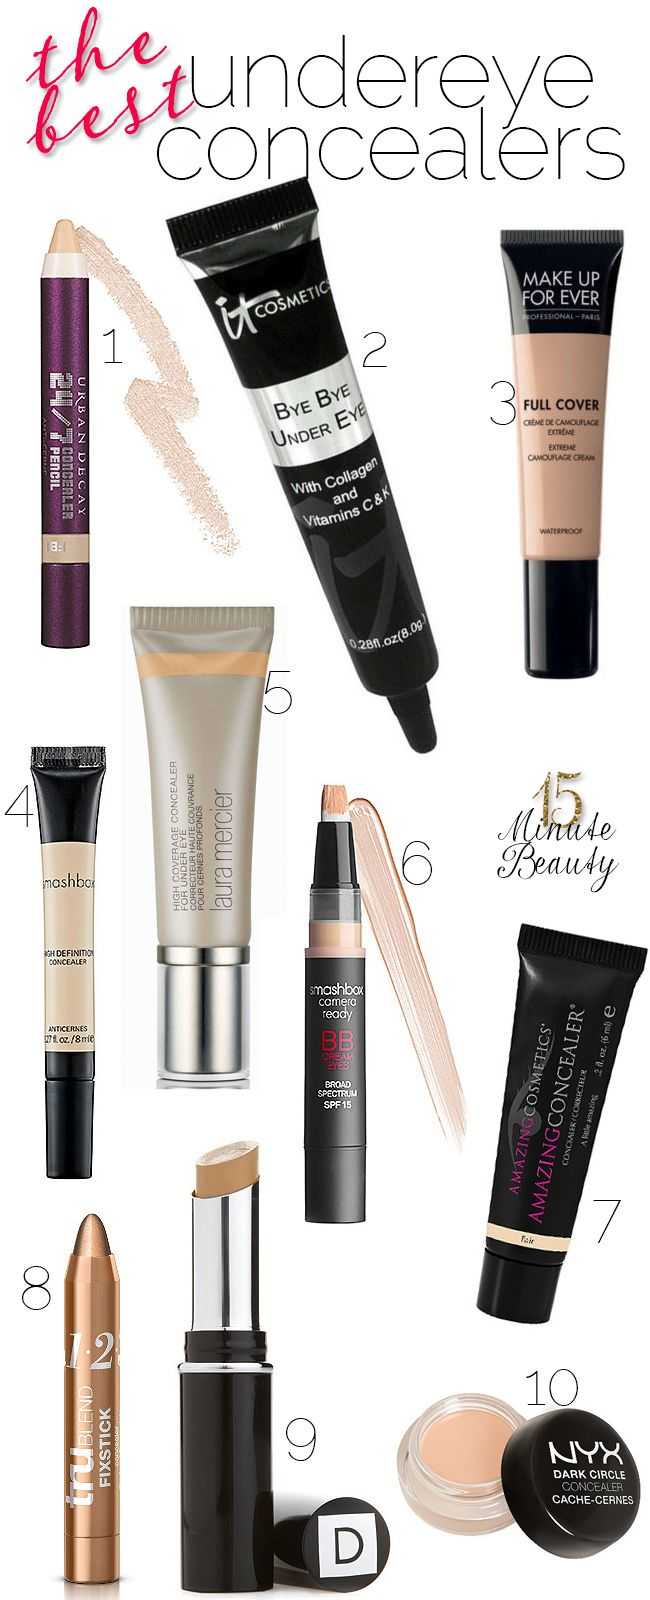 The best concealers for under eye circles   Beauty   Pinterest ...